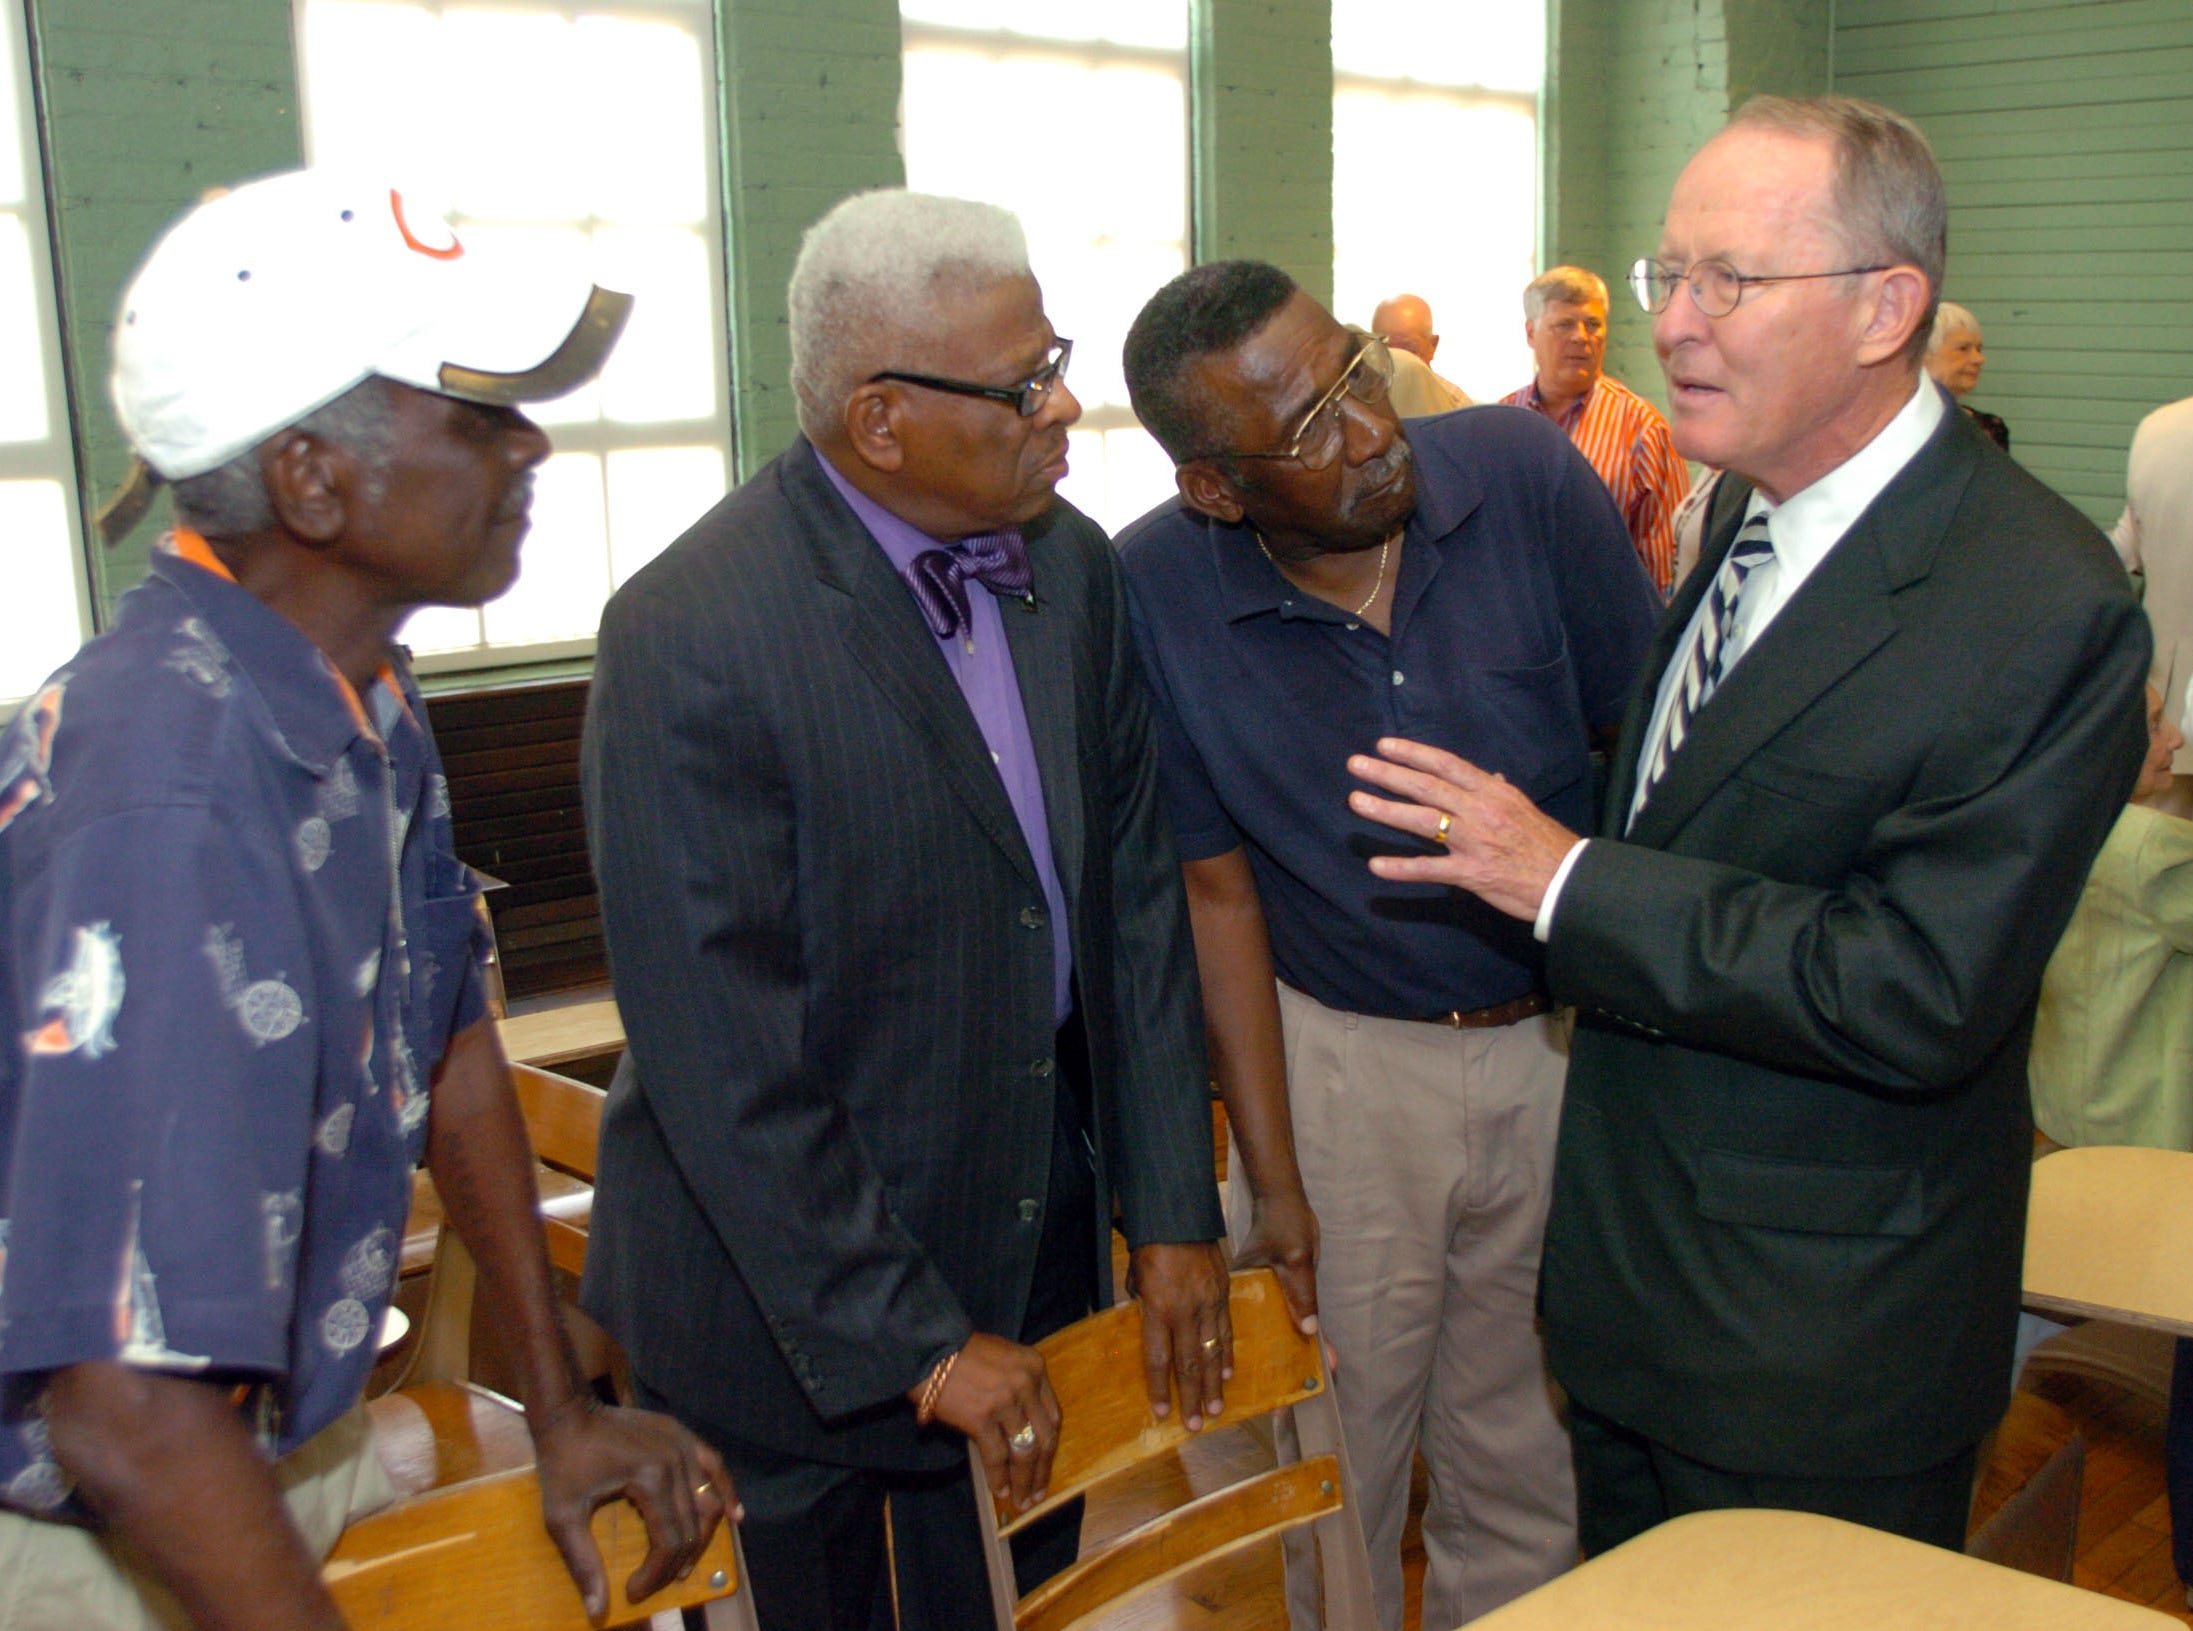 U.S. Senator Lamar Alexander talks with three of the Clinton Twelve before a ceremony honoring former Governor Frank G. Clement's role in desegregation of Clinton High School on Wednesday at the Green McAdoo Cultural Center and Museum. From left, are Maurice Soles, Bobby Cain, Alfred Williams and Alexander.